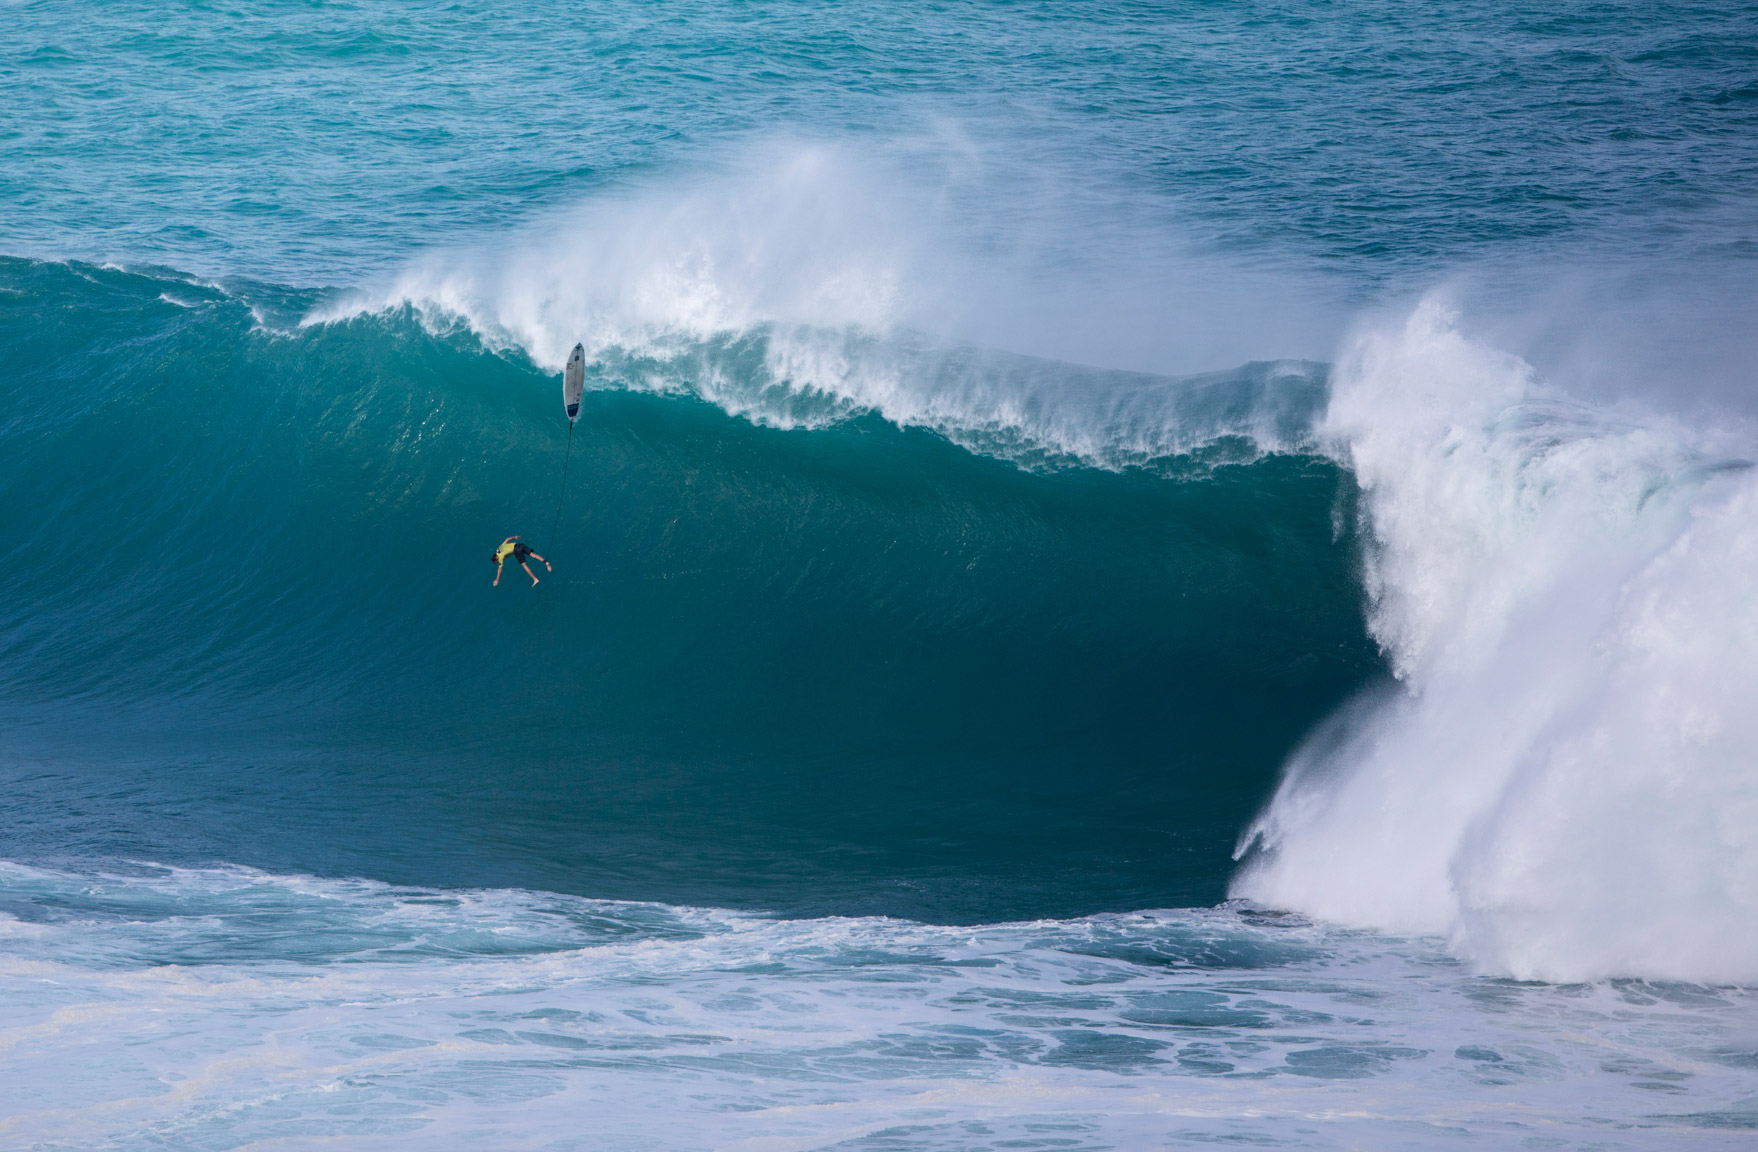 Grant Twiggy Baker, North Shore, Hawaii